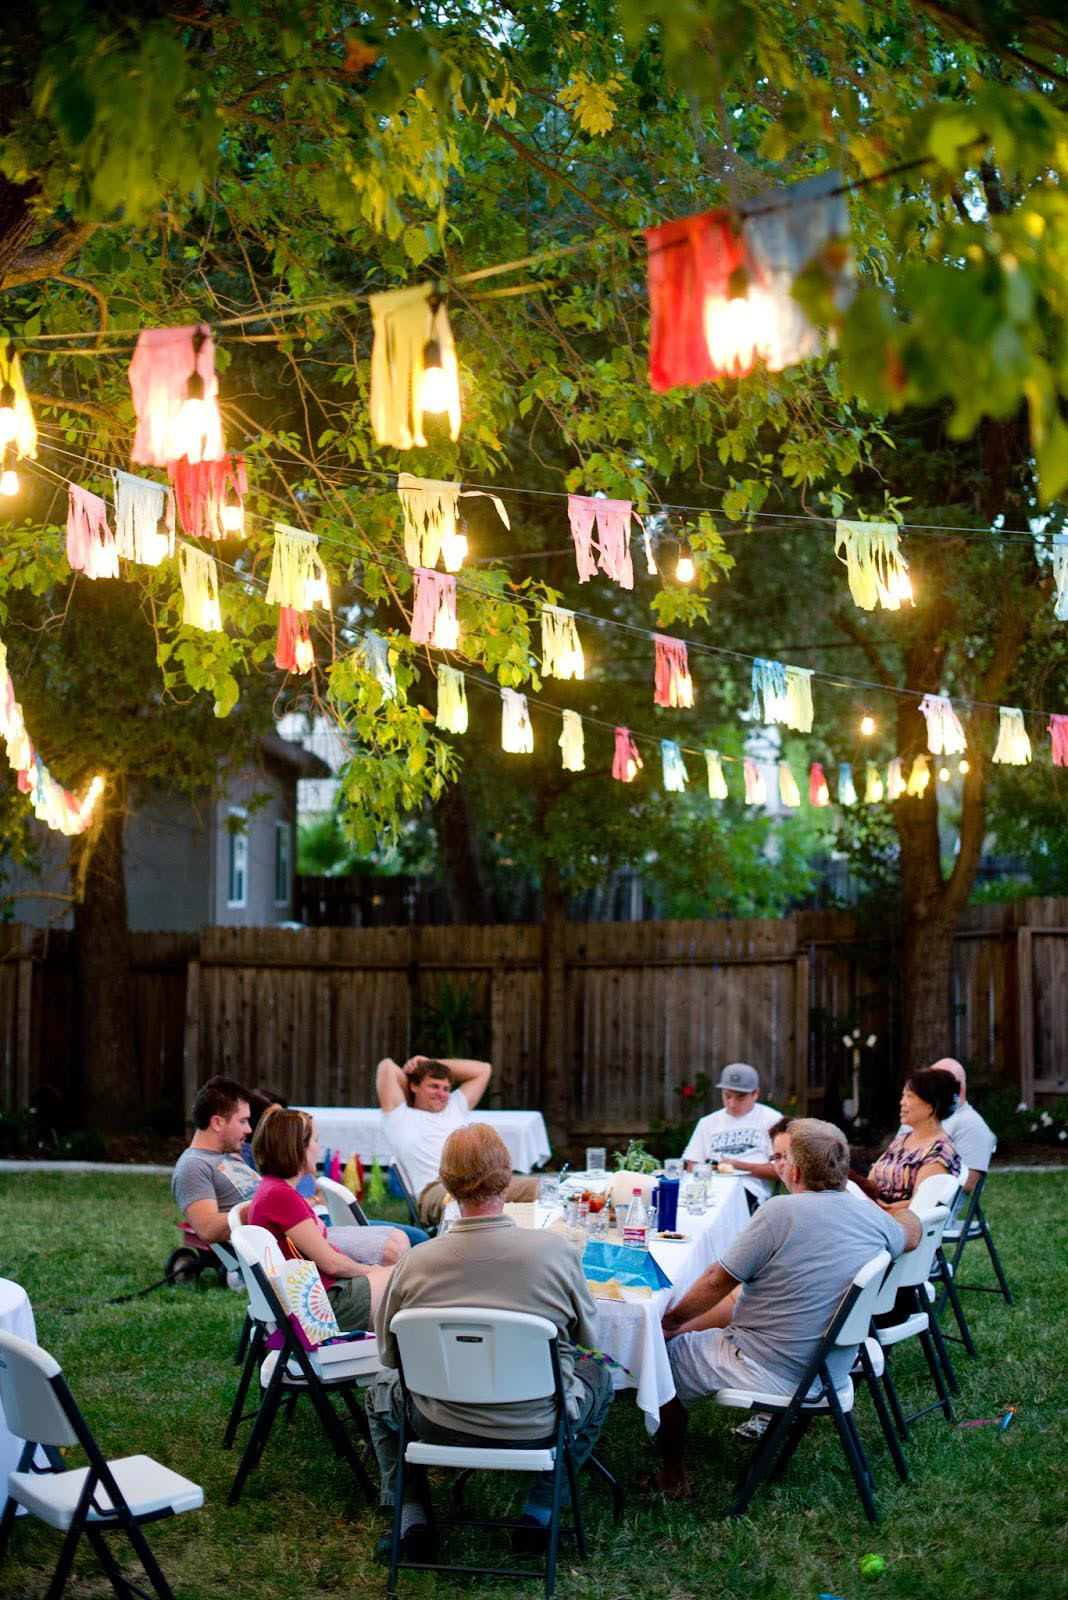 Some creative outdoor party games home party ideas for Fun activities for adults in nyc